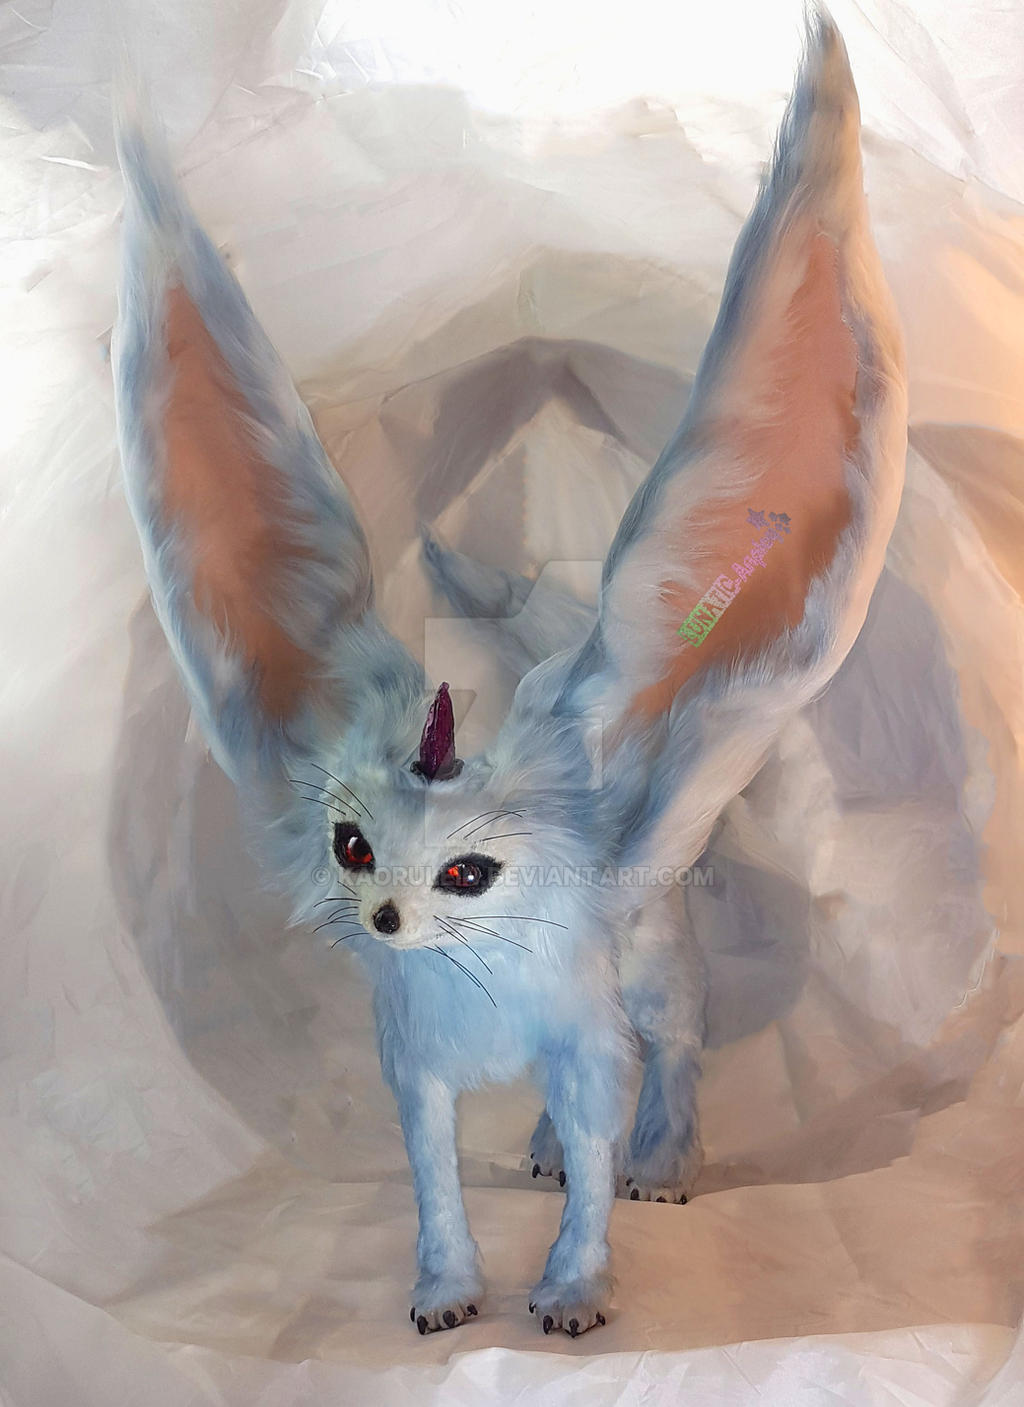 ff15 carbuncle by invaderdeepsauce - photo #12